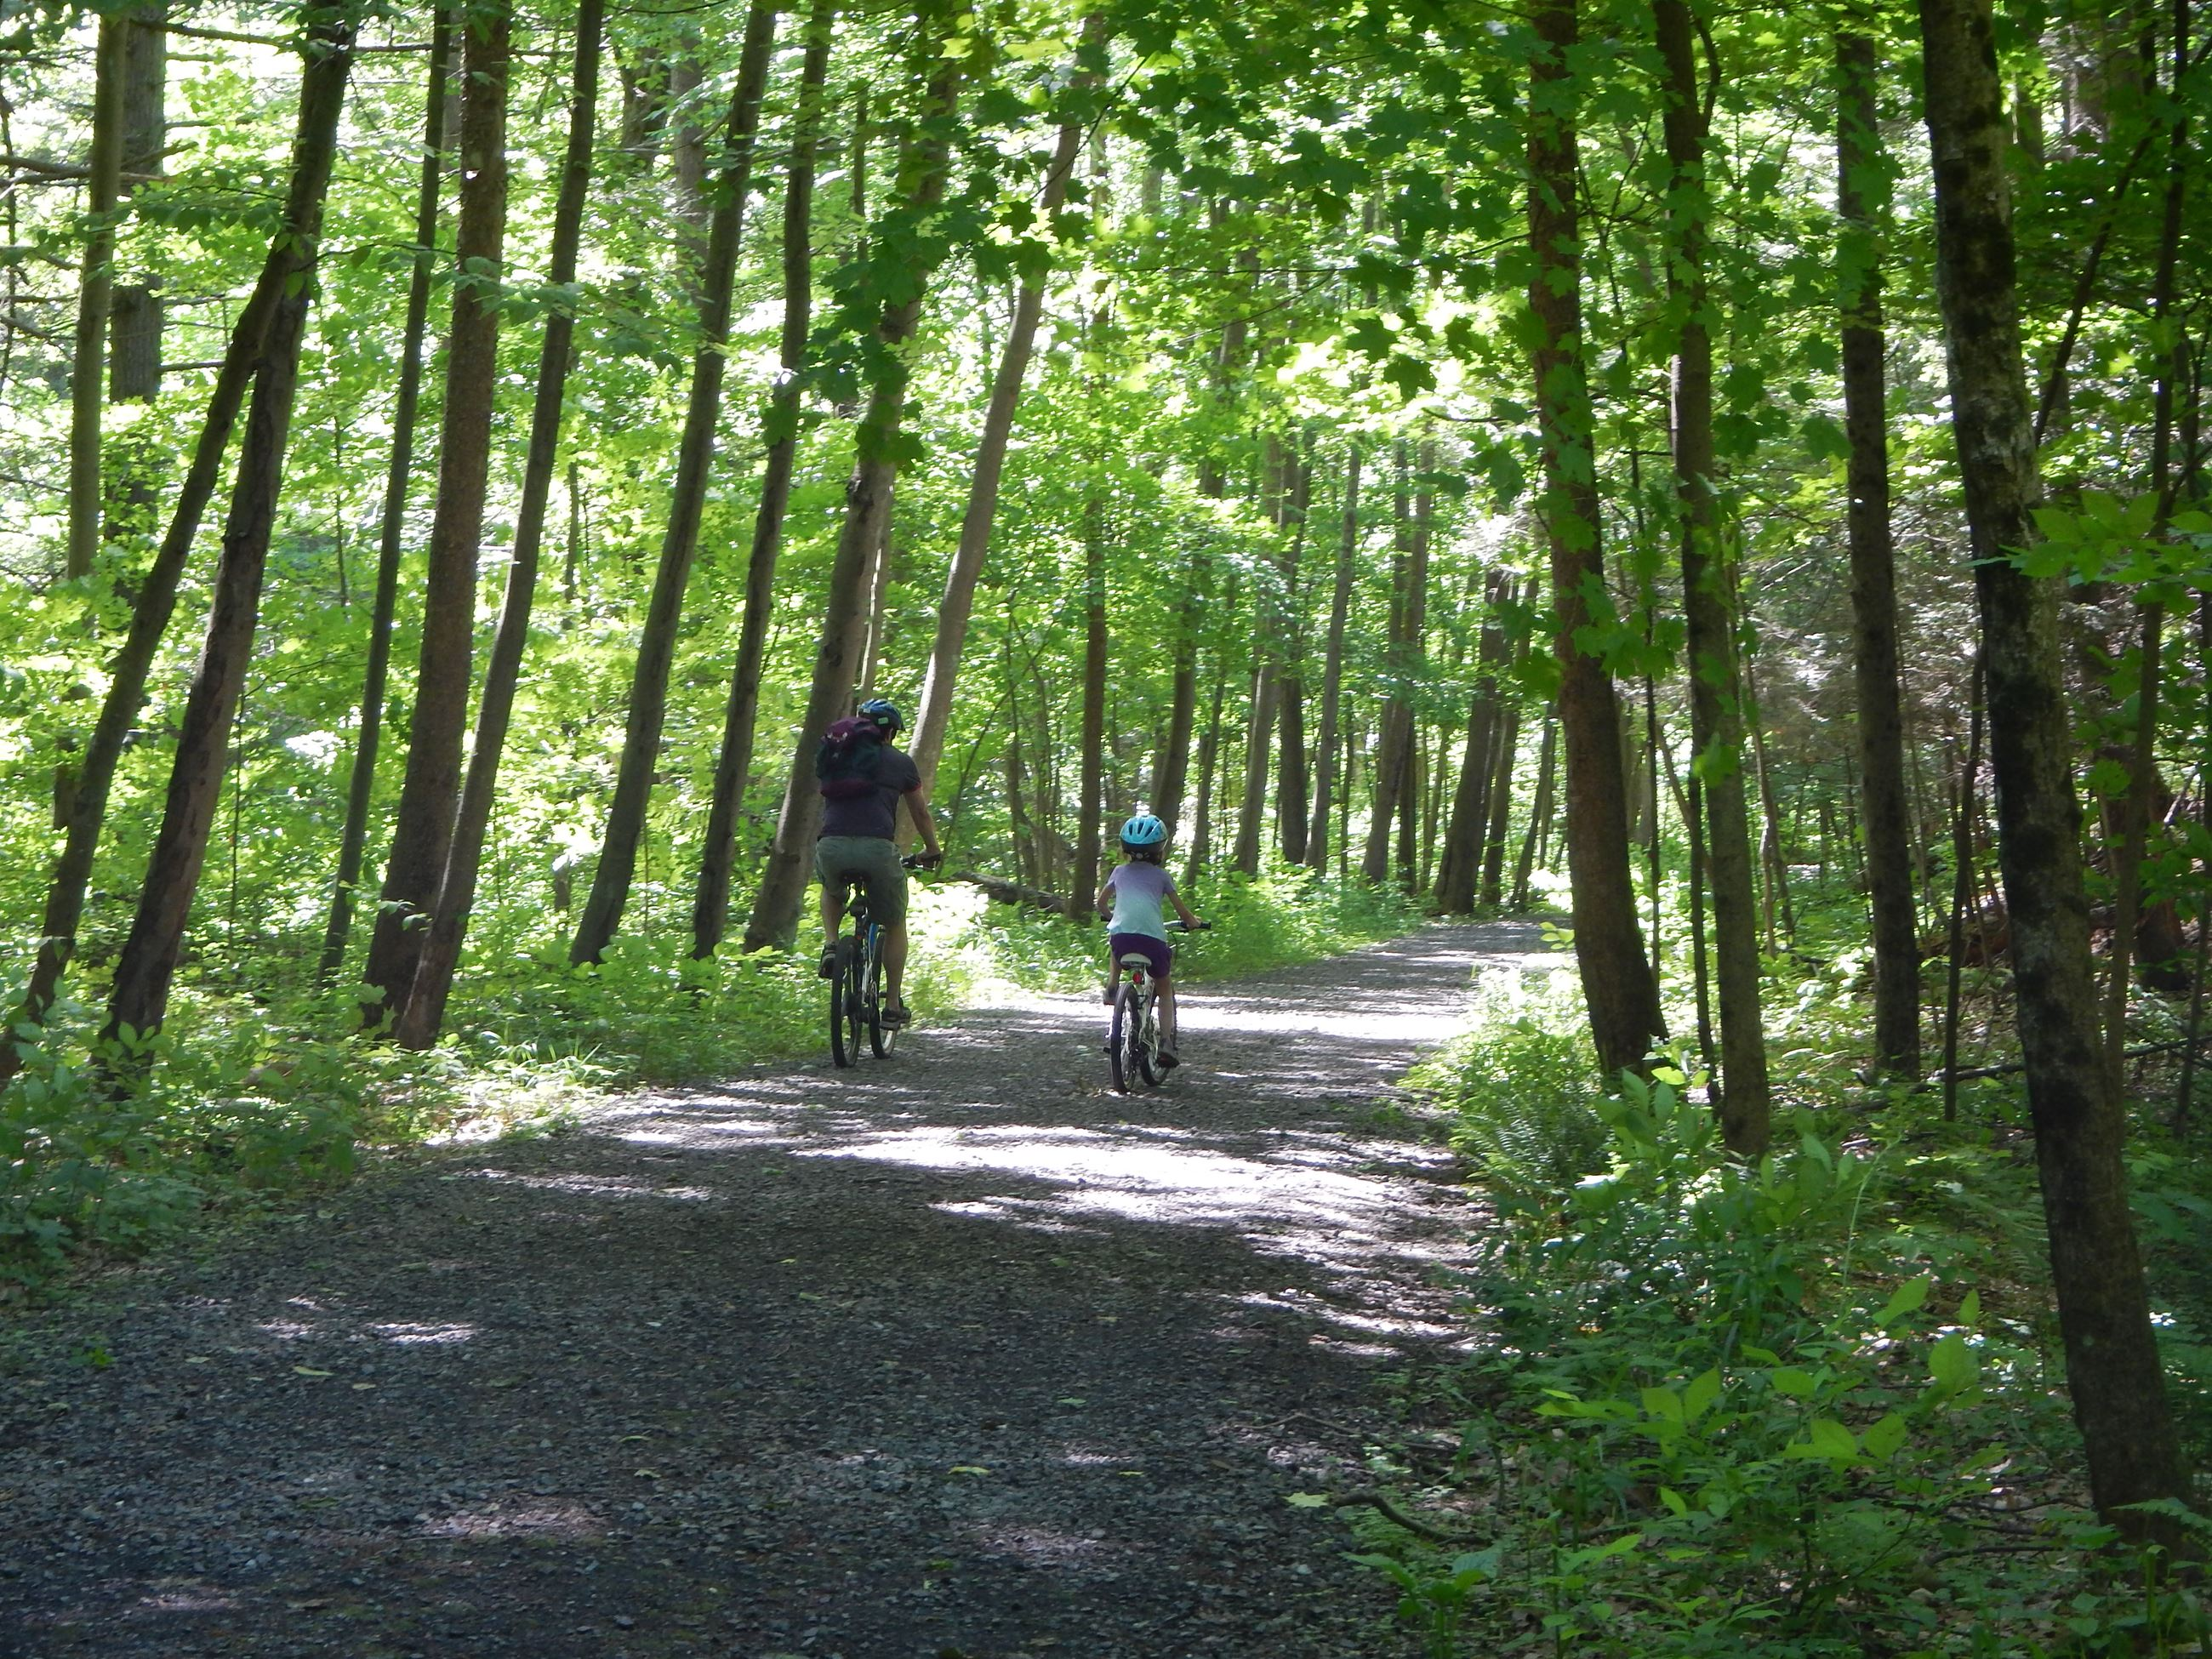 Bicycling the trail